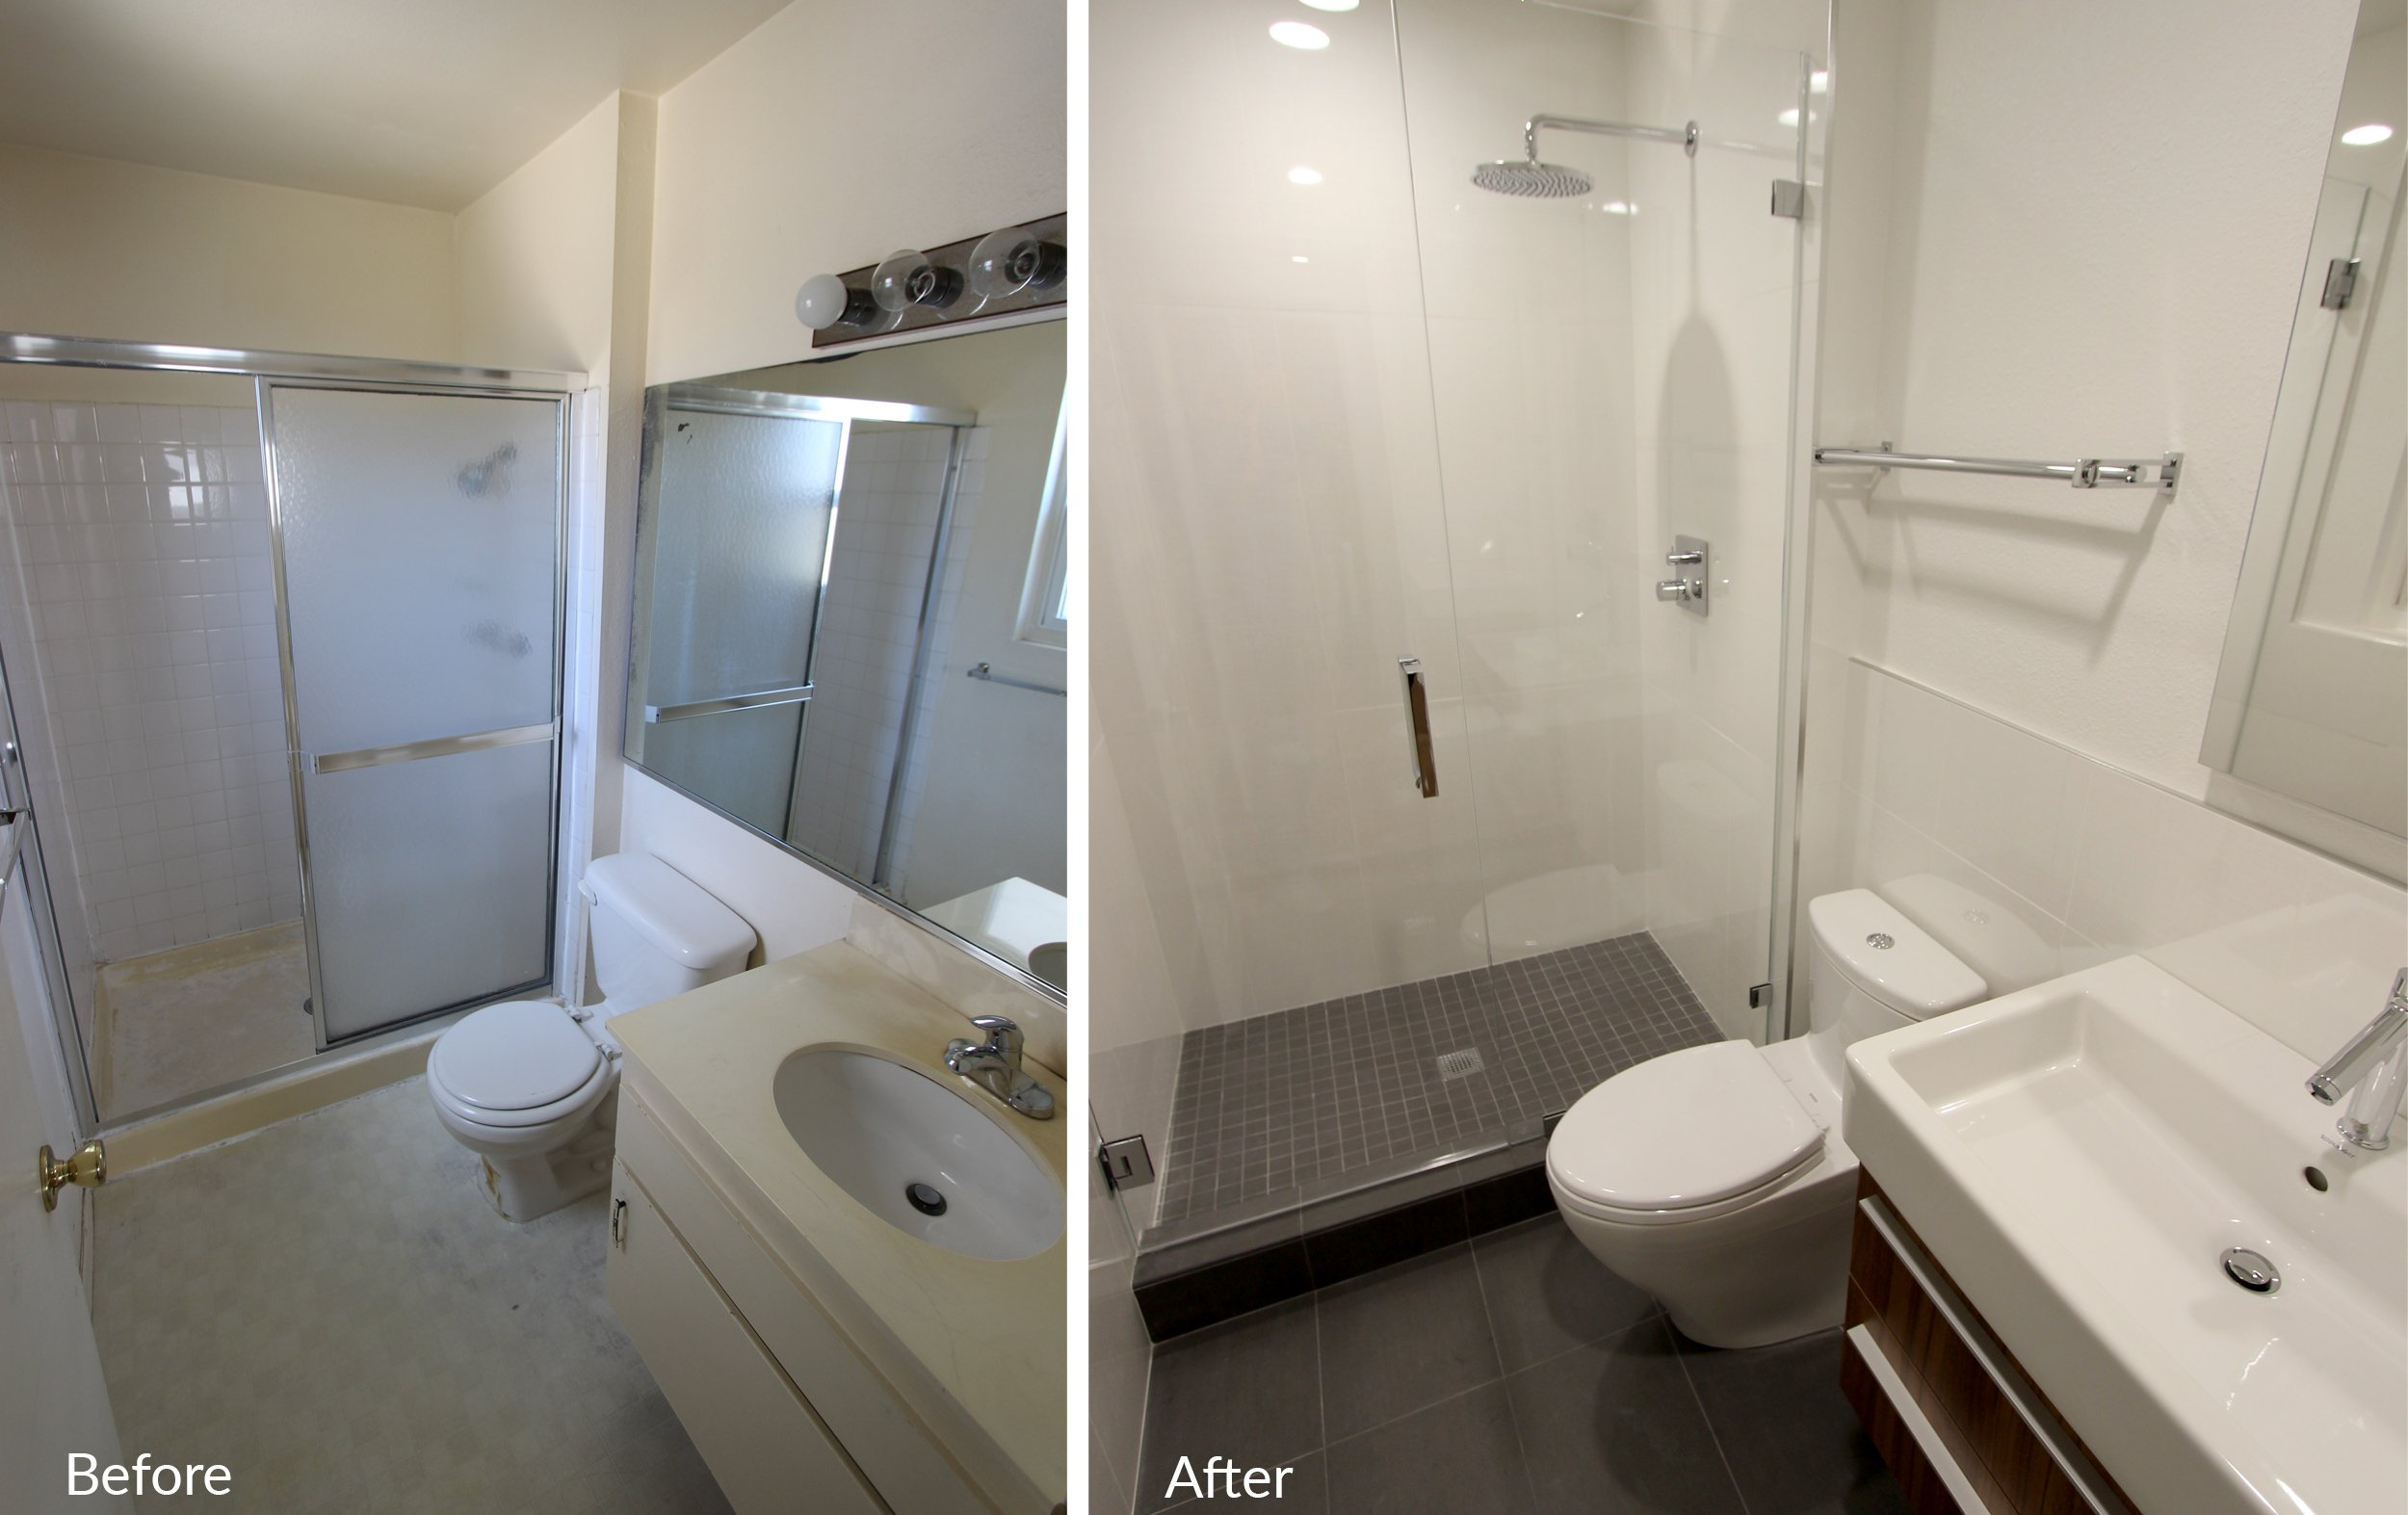 Bathroom Remodeling San Diego CA Over 25 Years Experience TR